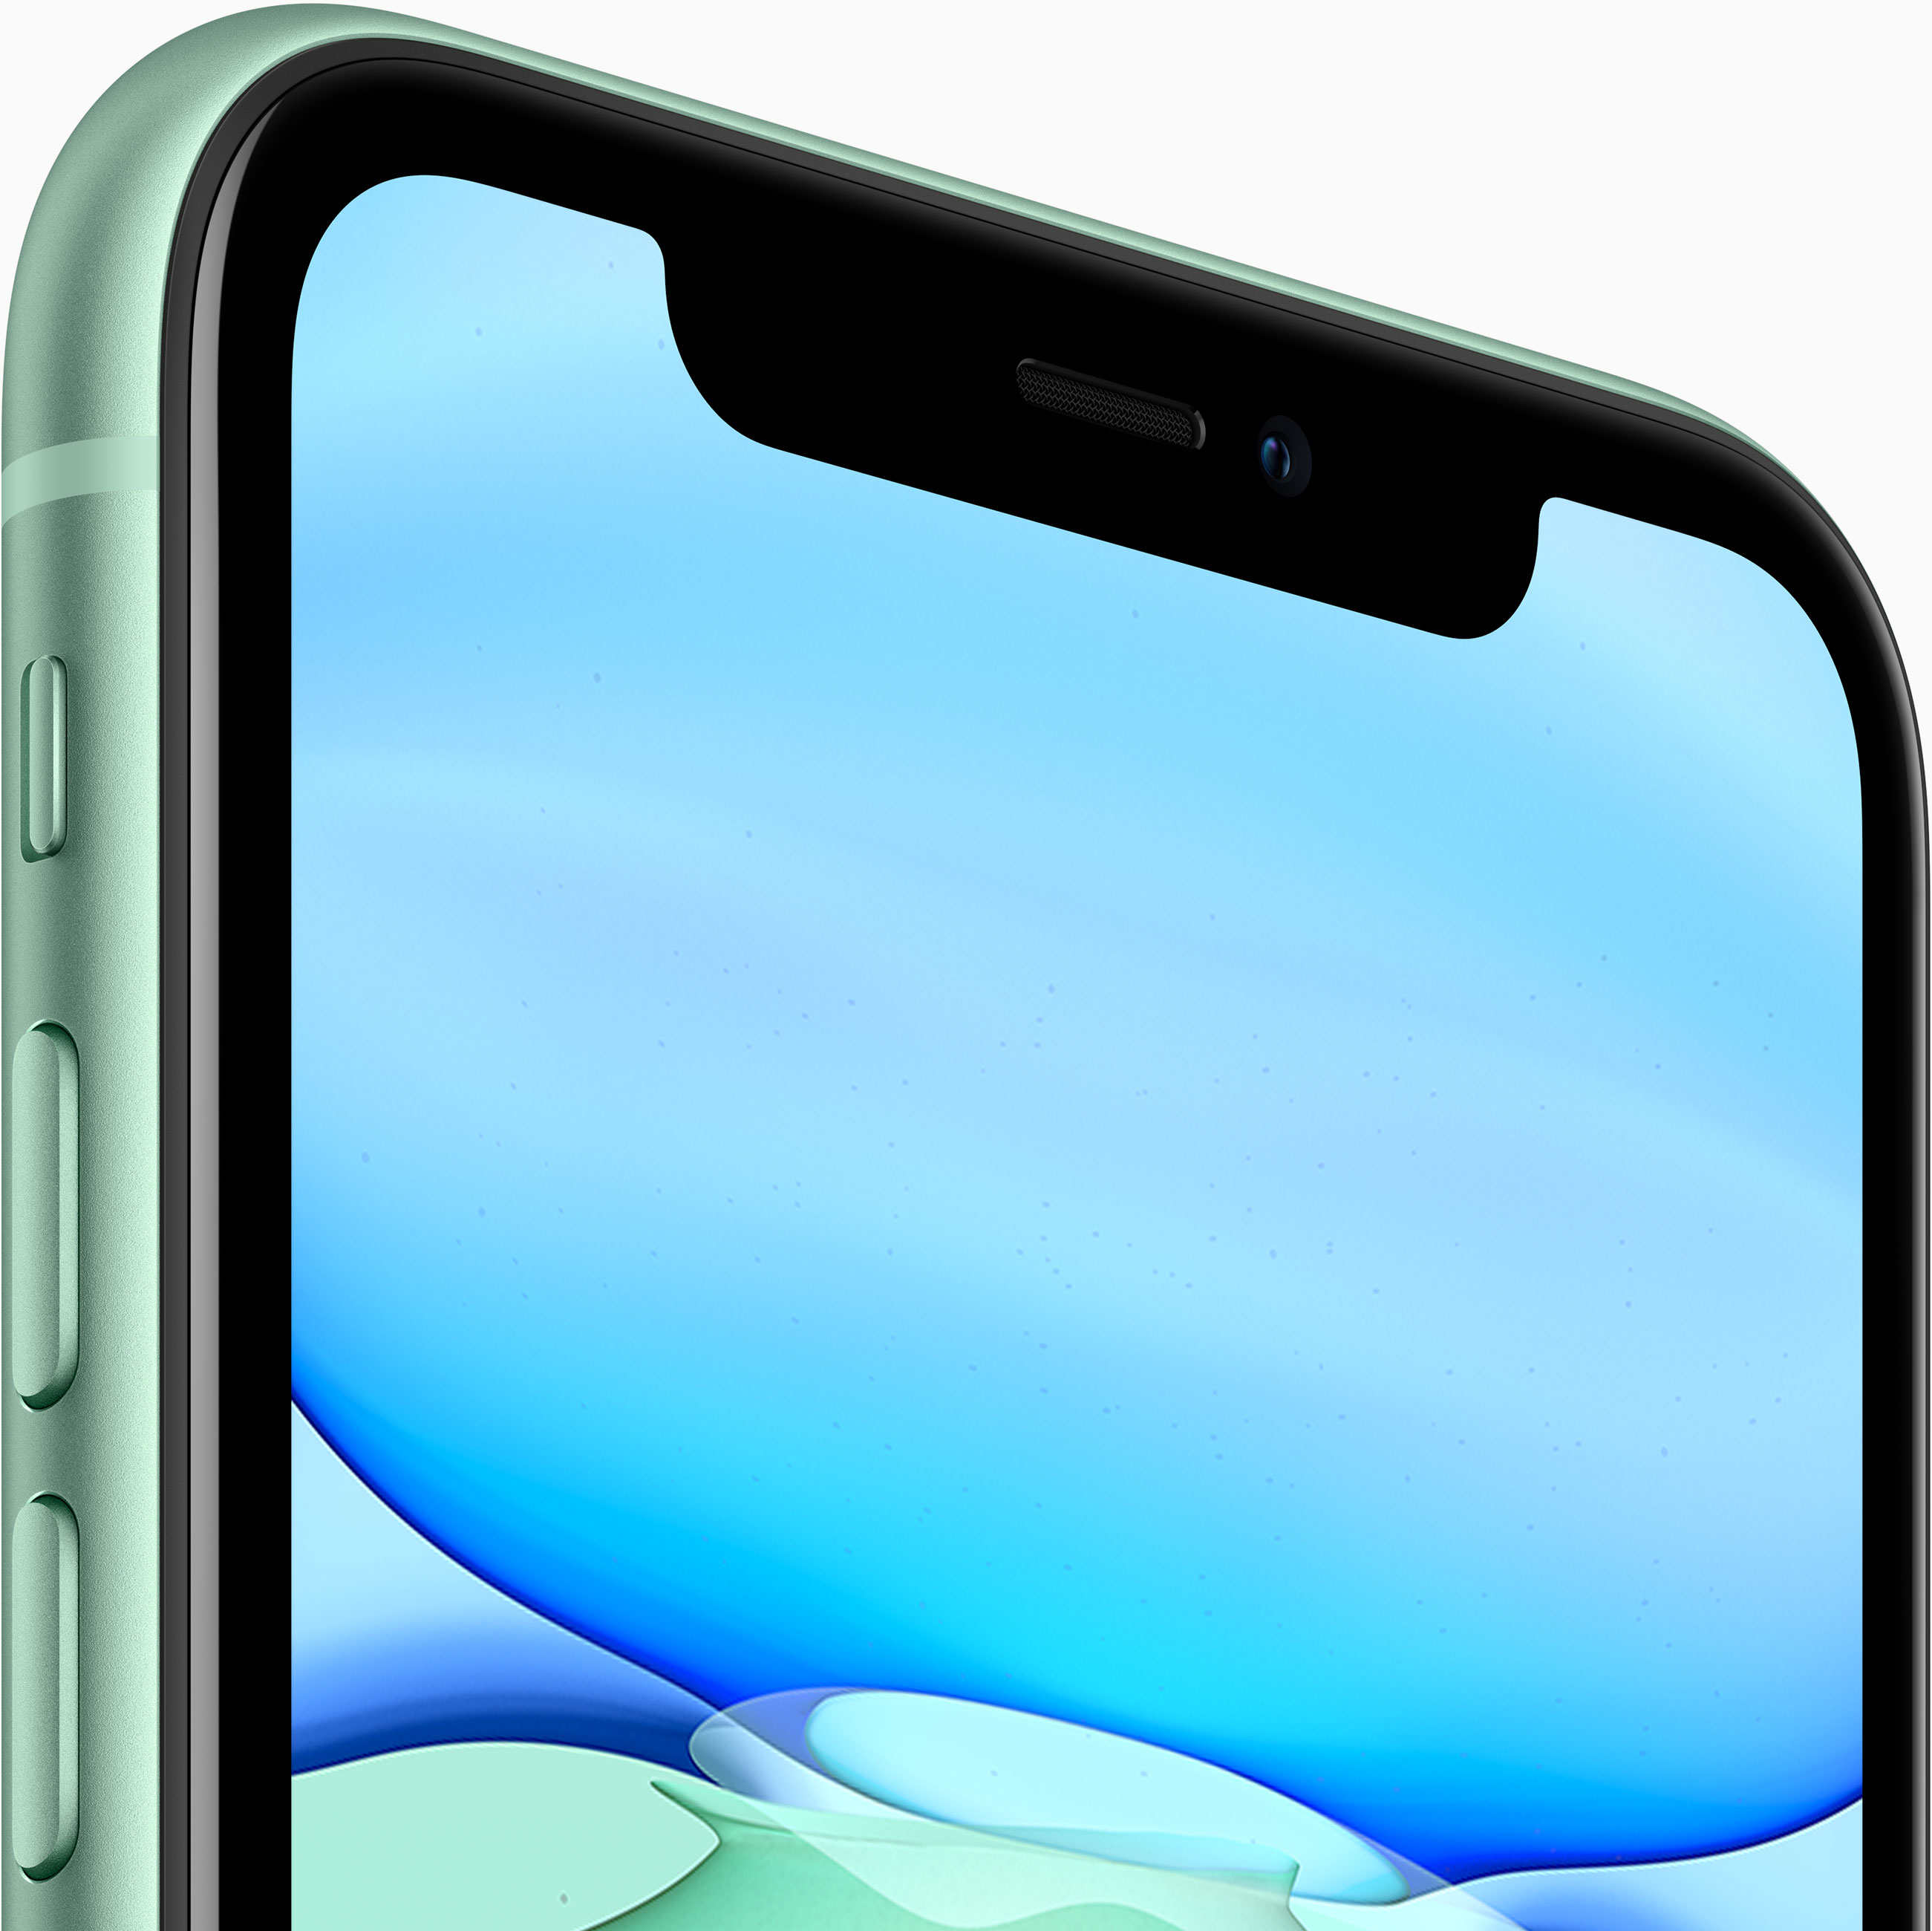 Roundup: first impressions of the iPhone 11 and iPhone 11 Pro